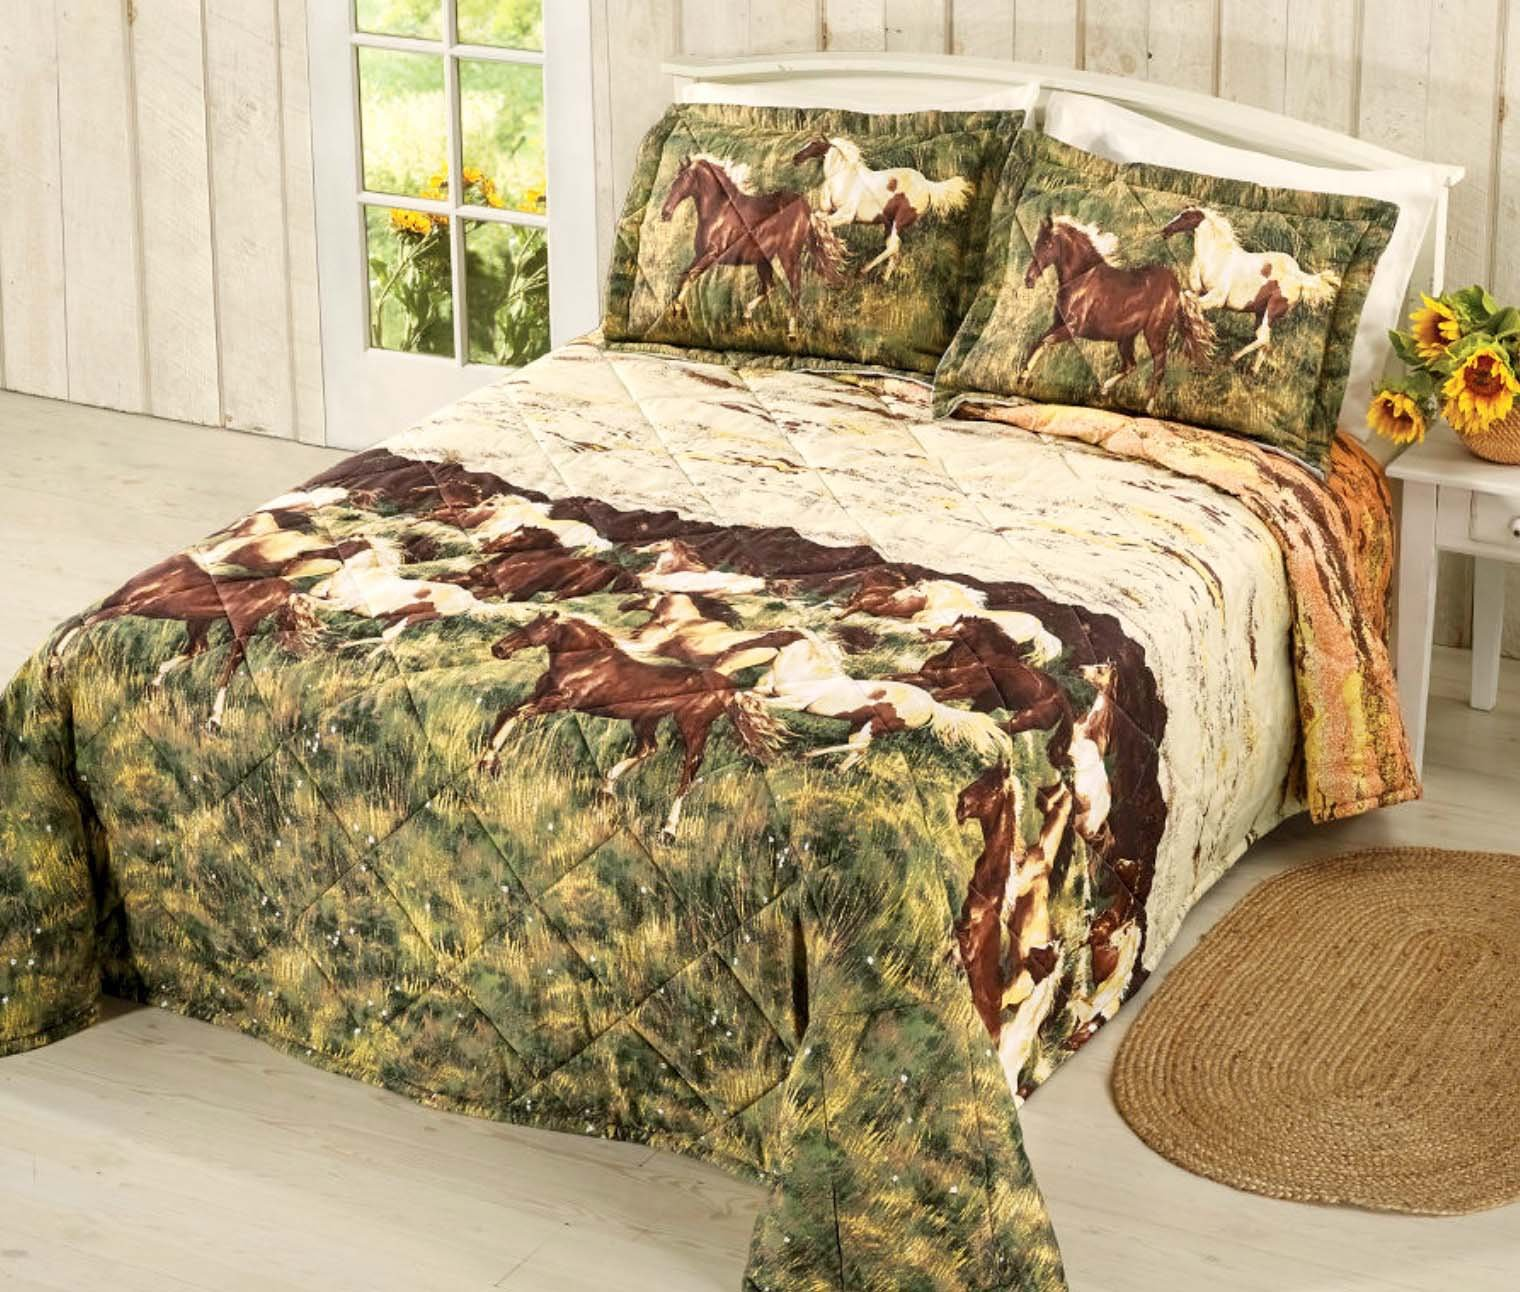 SUNSET RUN Western Equestrian Galloping HORSES QUILTED Bedspread + TWO KING PILLOW SHAMS (3pc KING SIZE)